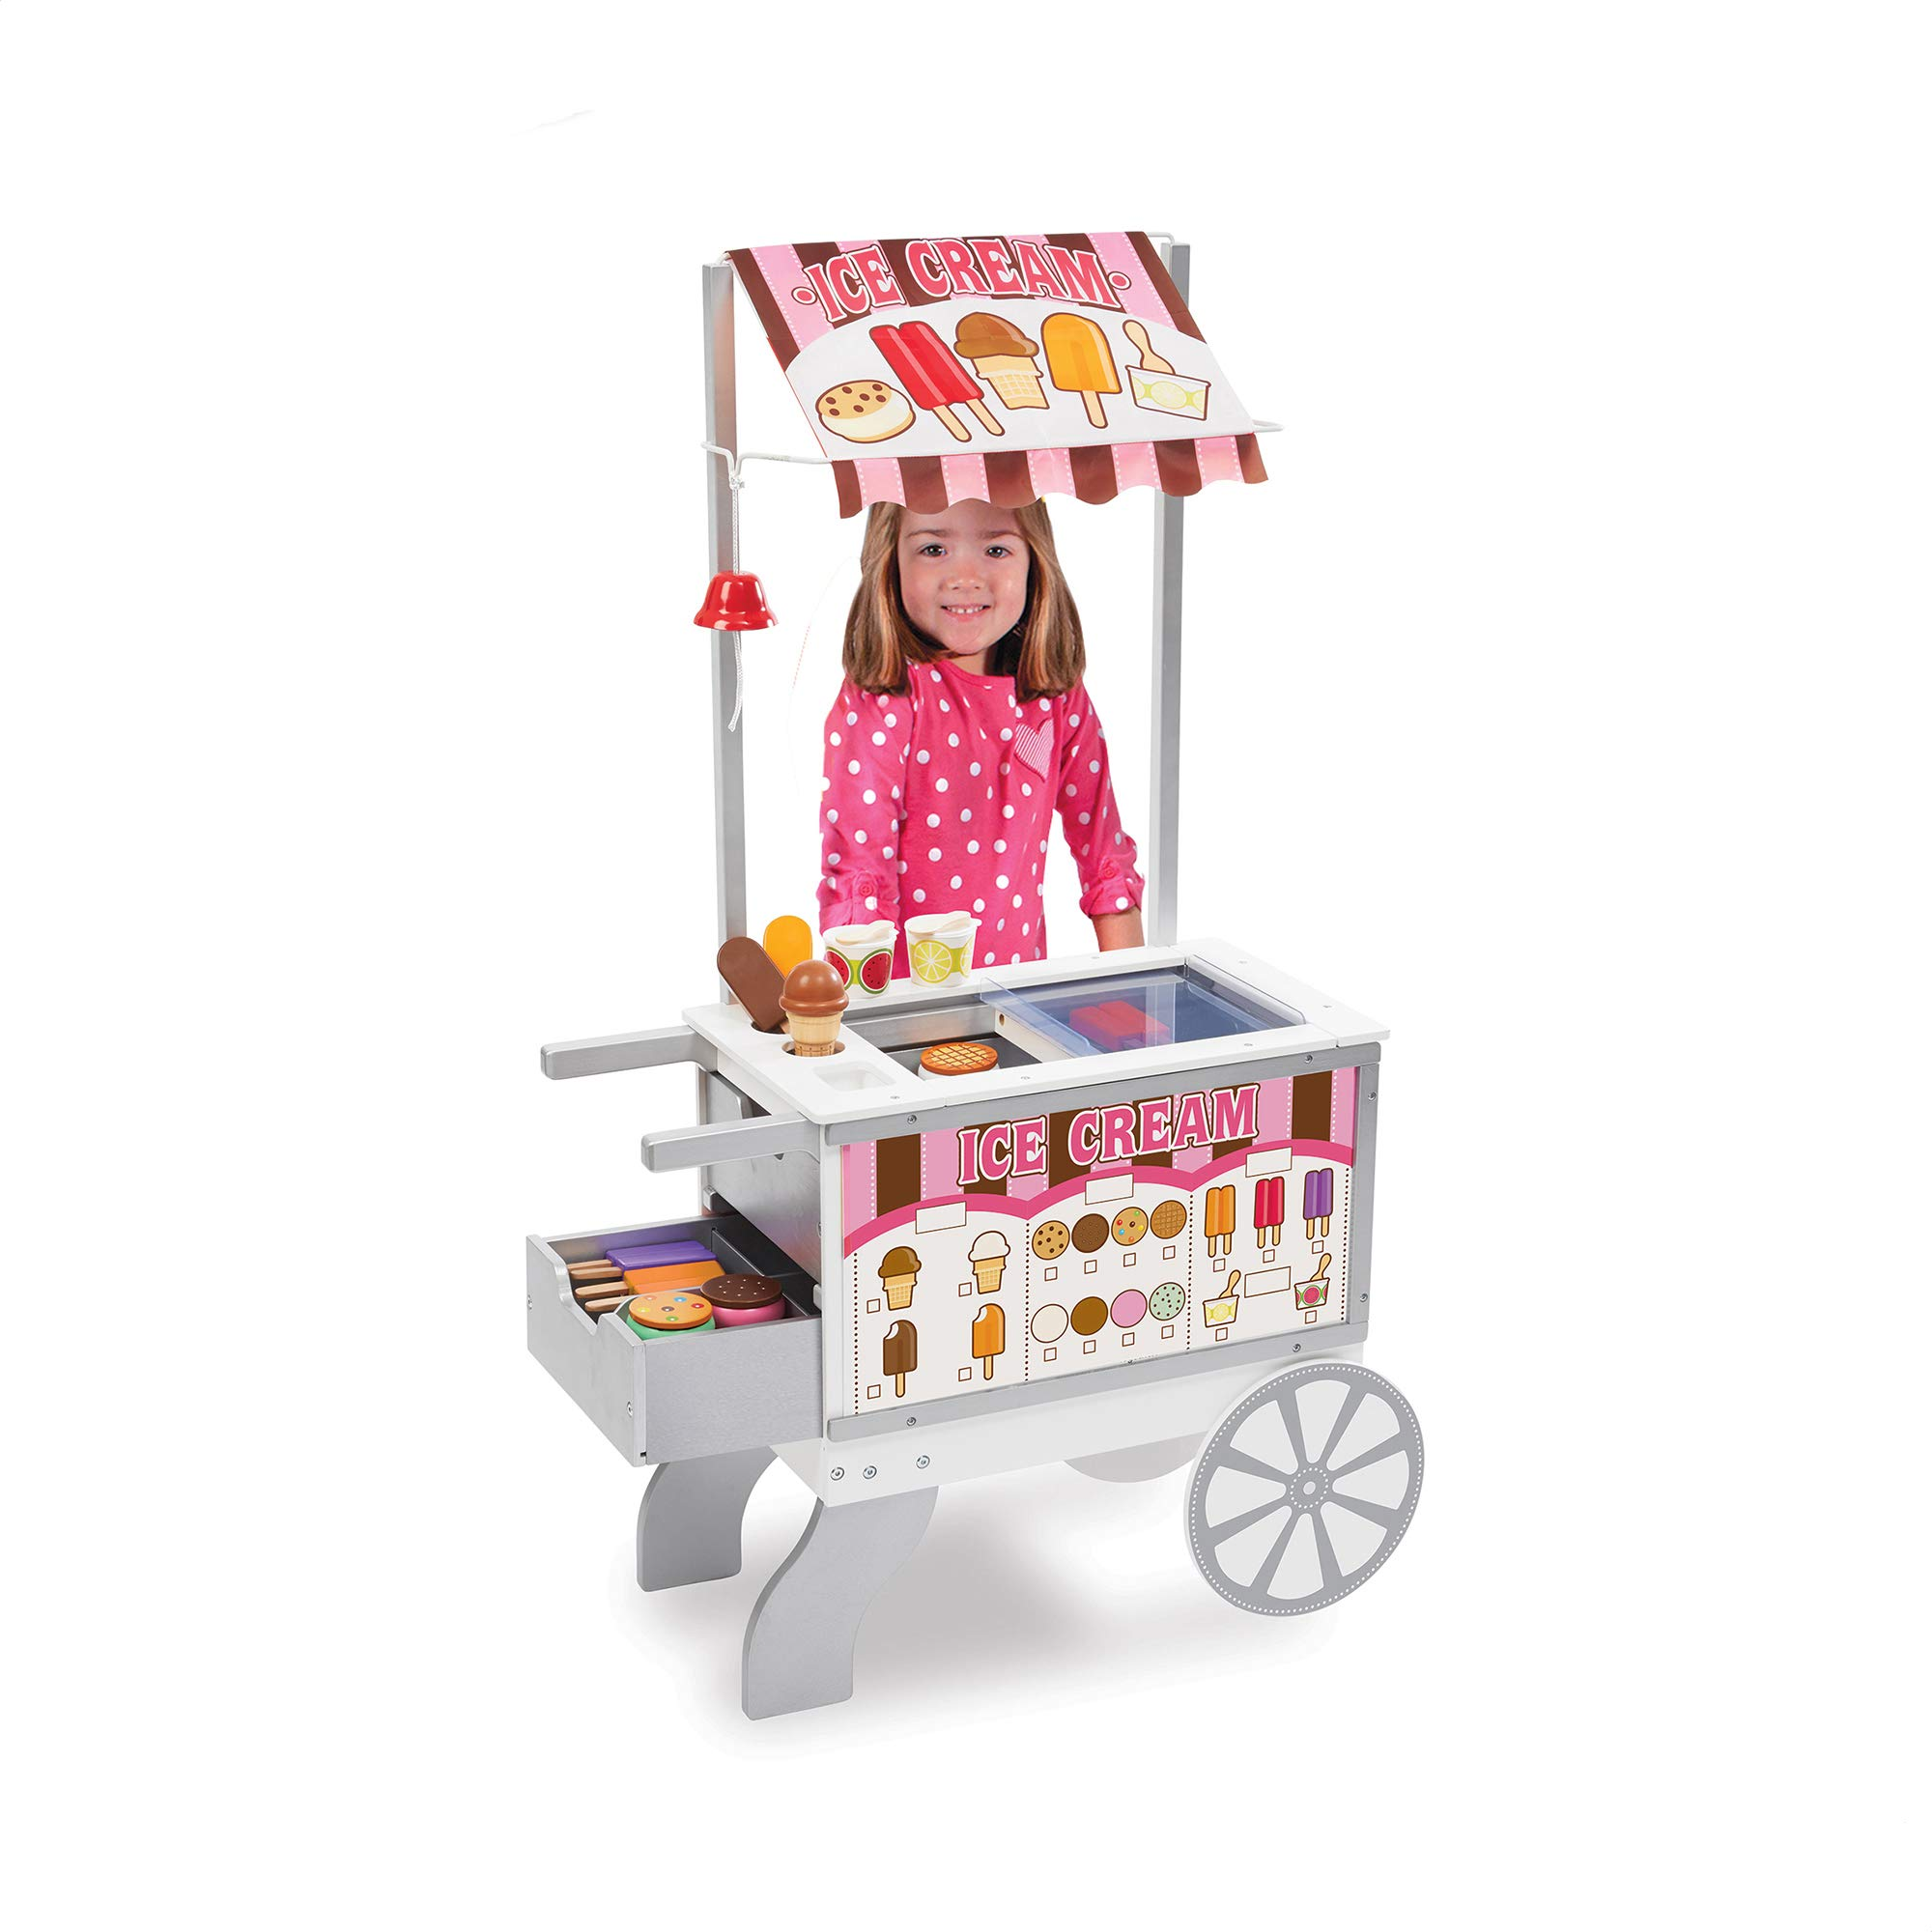 Melissa & Doug Wooden Snacks & Sweets Food Cart (Play Sets & Kitchens, 40+ Play Food Pieces, 49'' H x 25.5'' W x 13.5'' L, Great Gift for Girls and Boys - Best for 3, 4, 5, 6, and 7 Year Olds) by Melissa & Doug